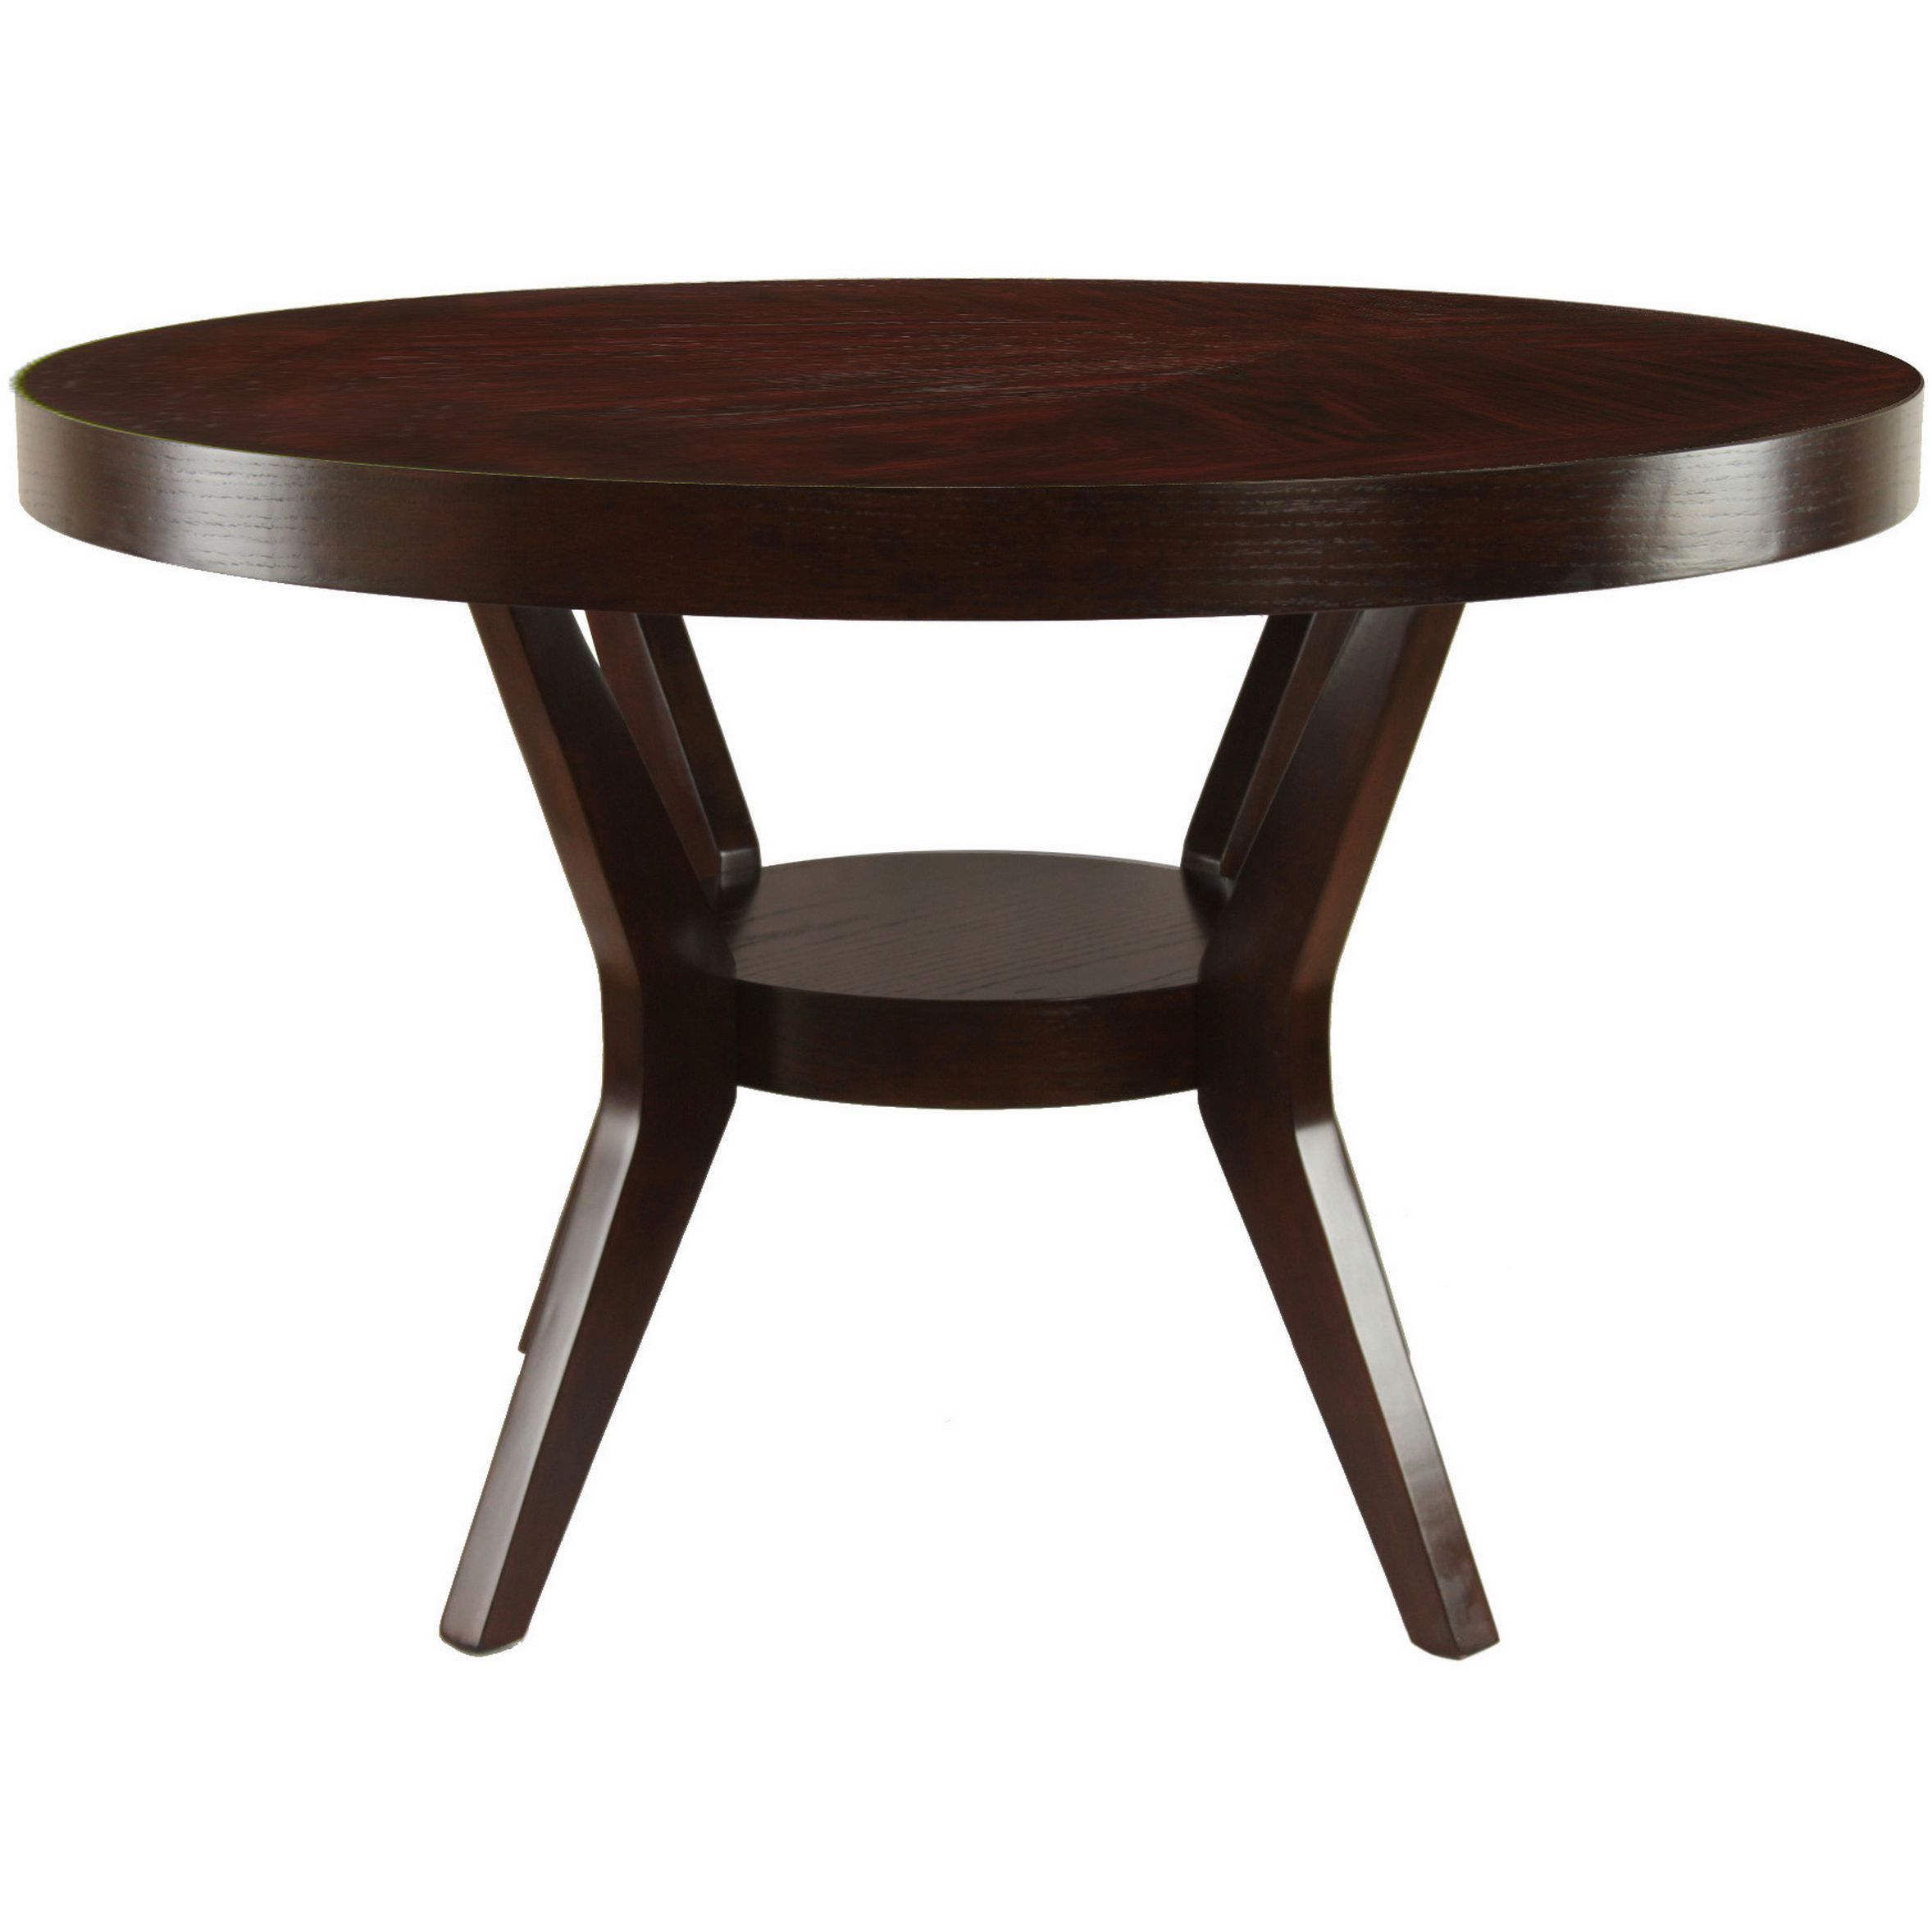 this gorgeous espresso dining room table is the perfect addition